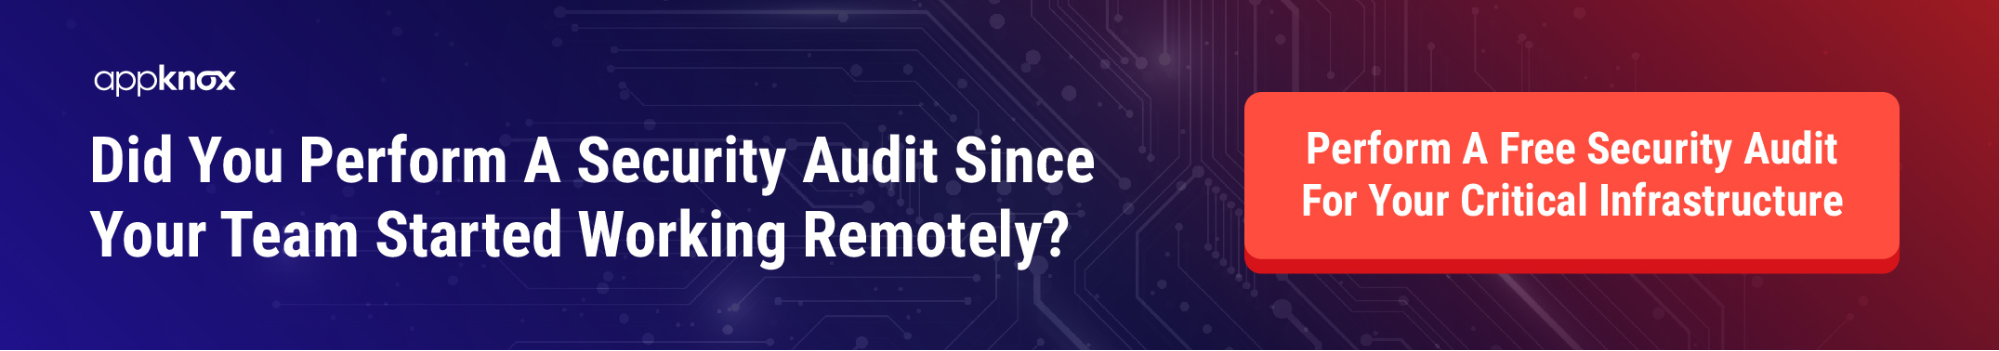 Appknox Security Audit